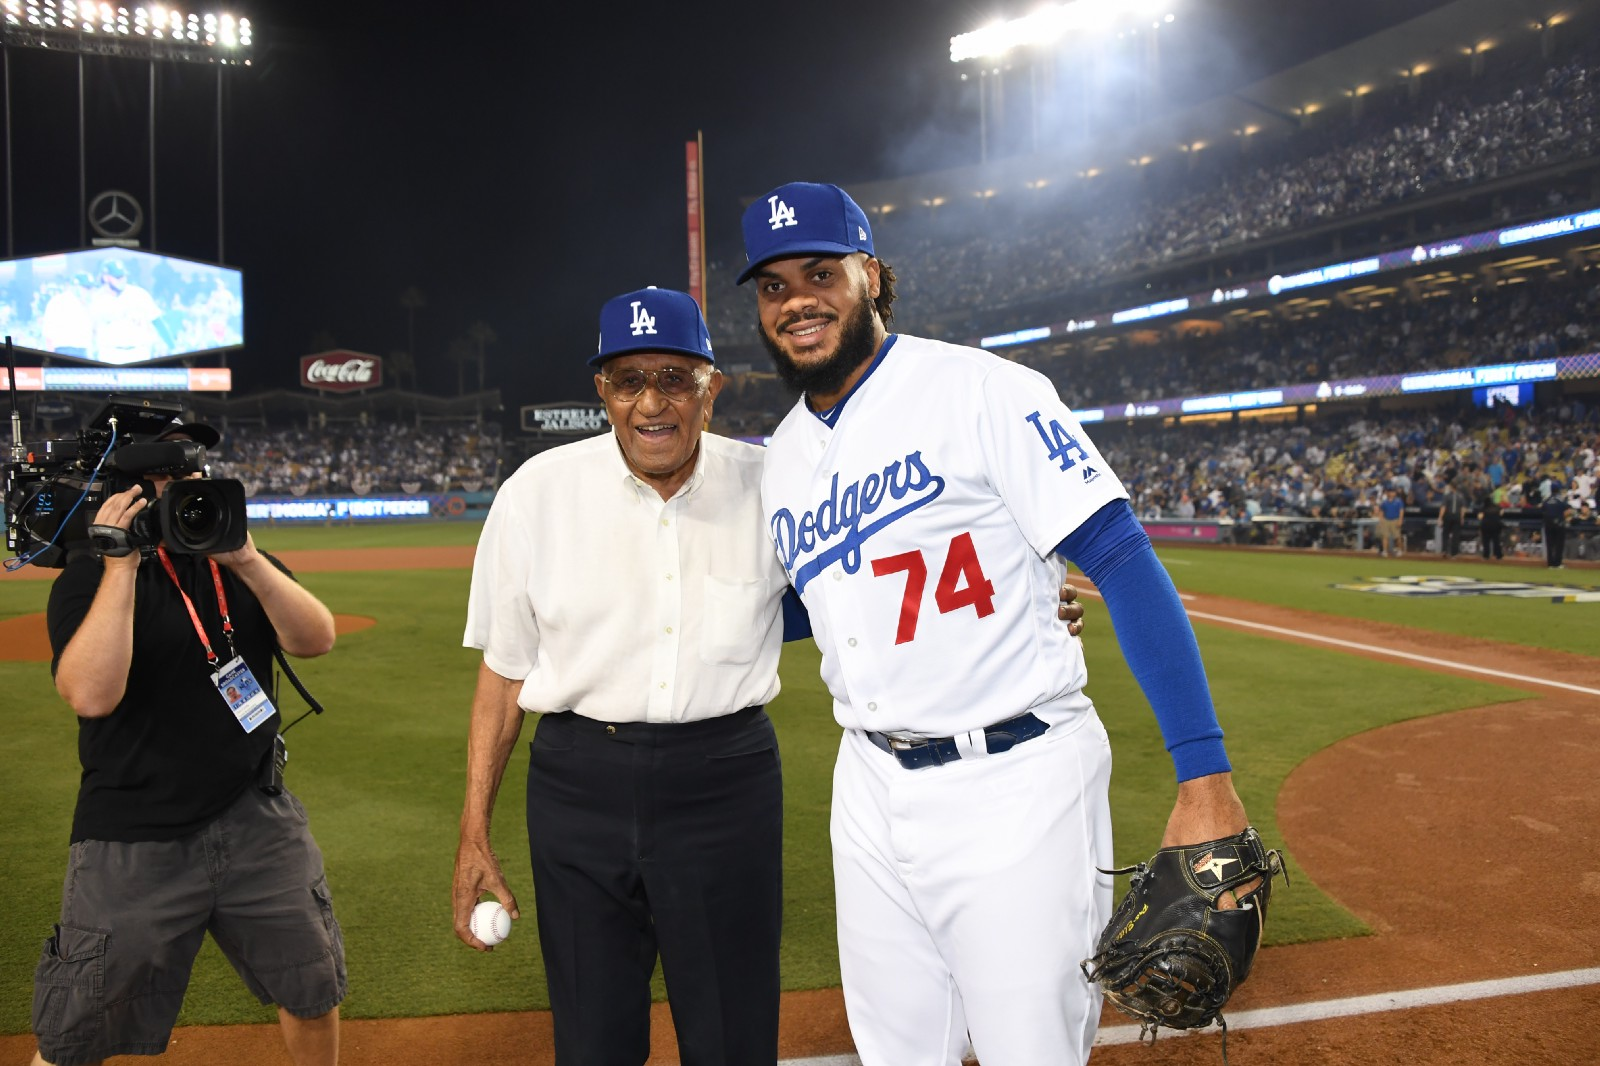 fabce8b8d Dodgers to wear uniform patch to honor Don Newcombe